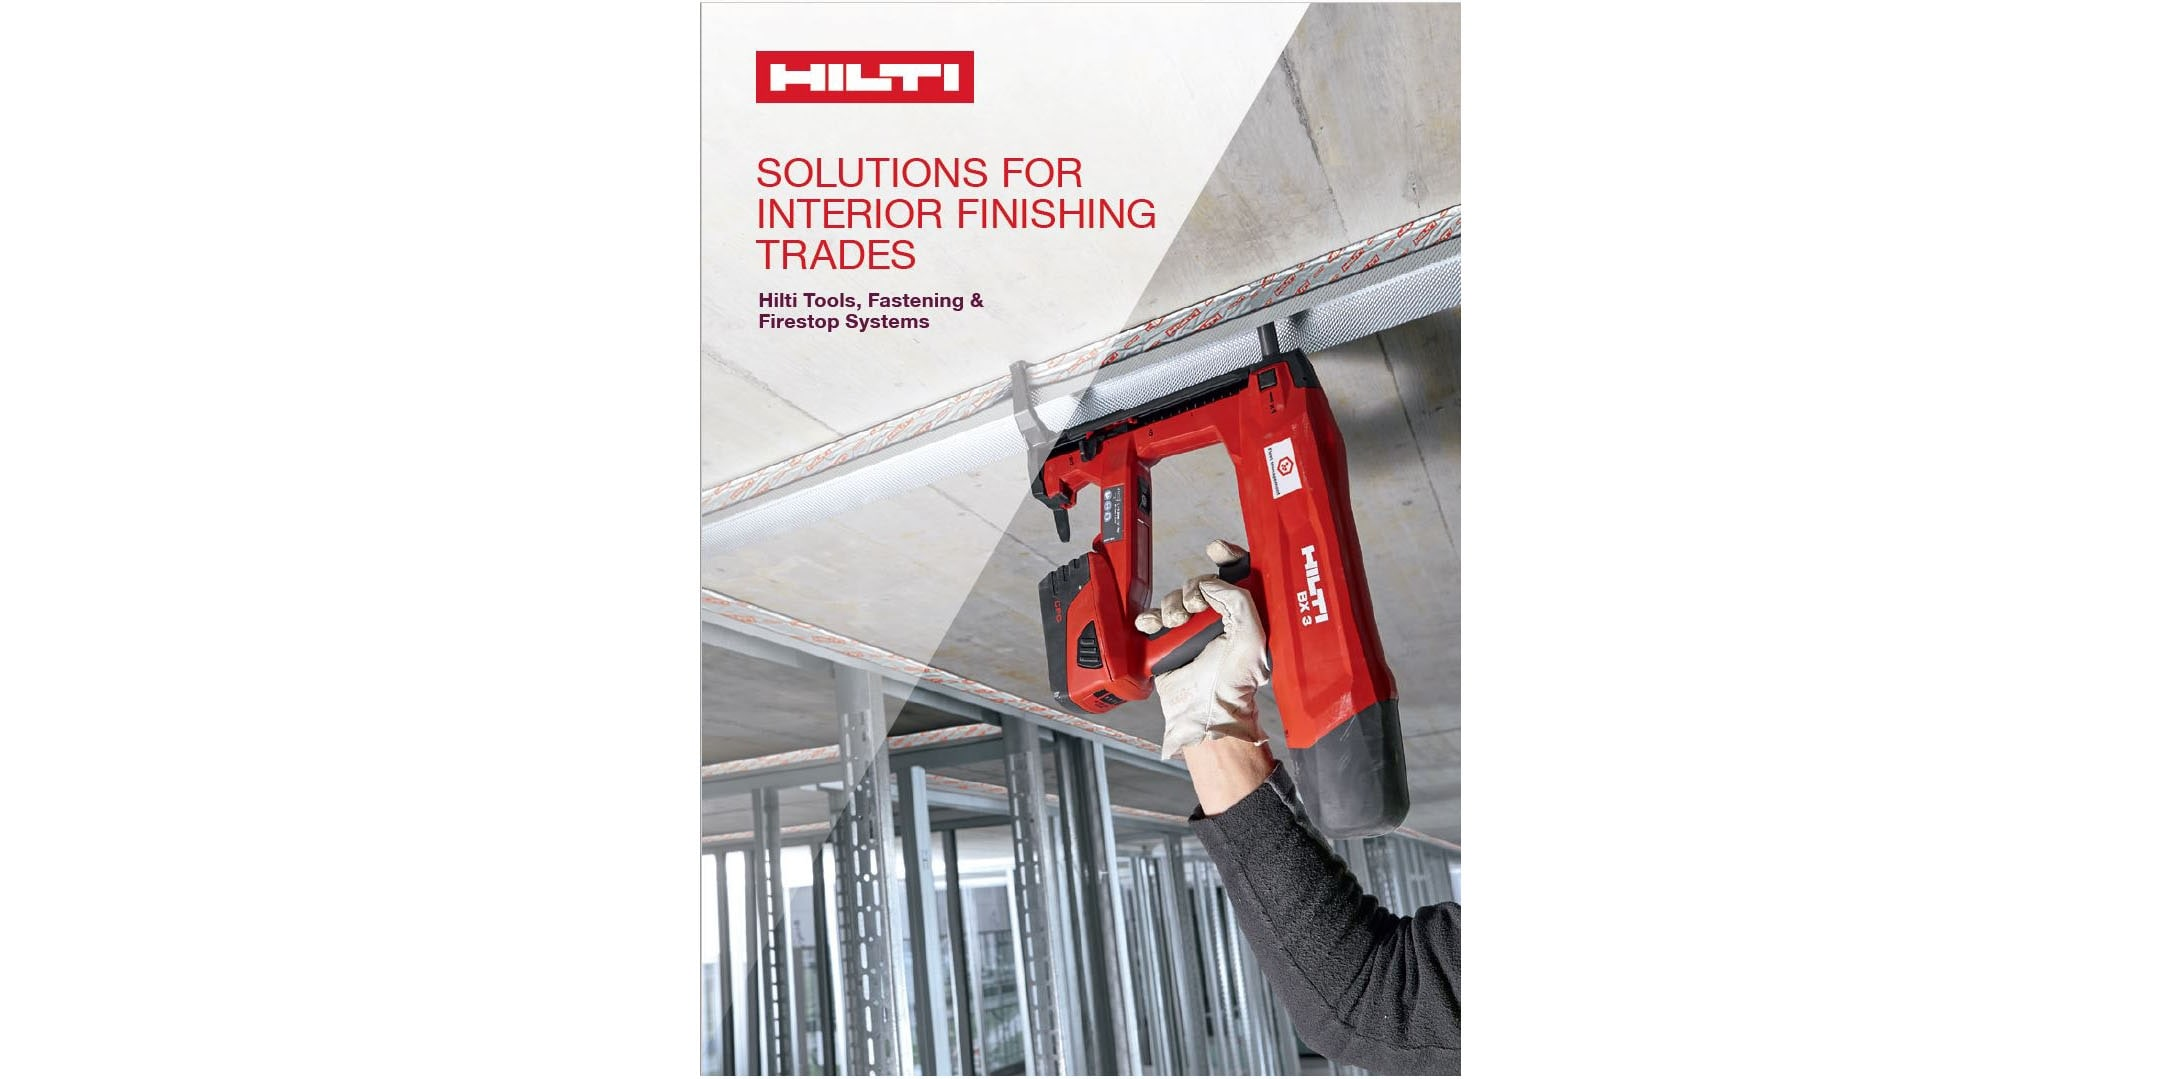 Hilti Solutions for Interior Finishing Trades